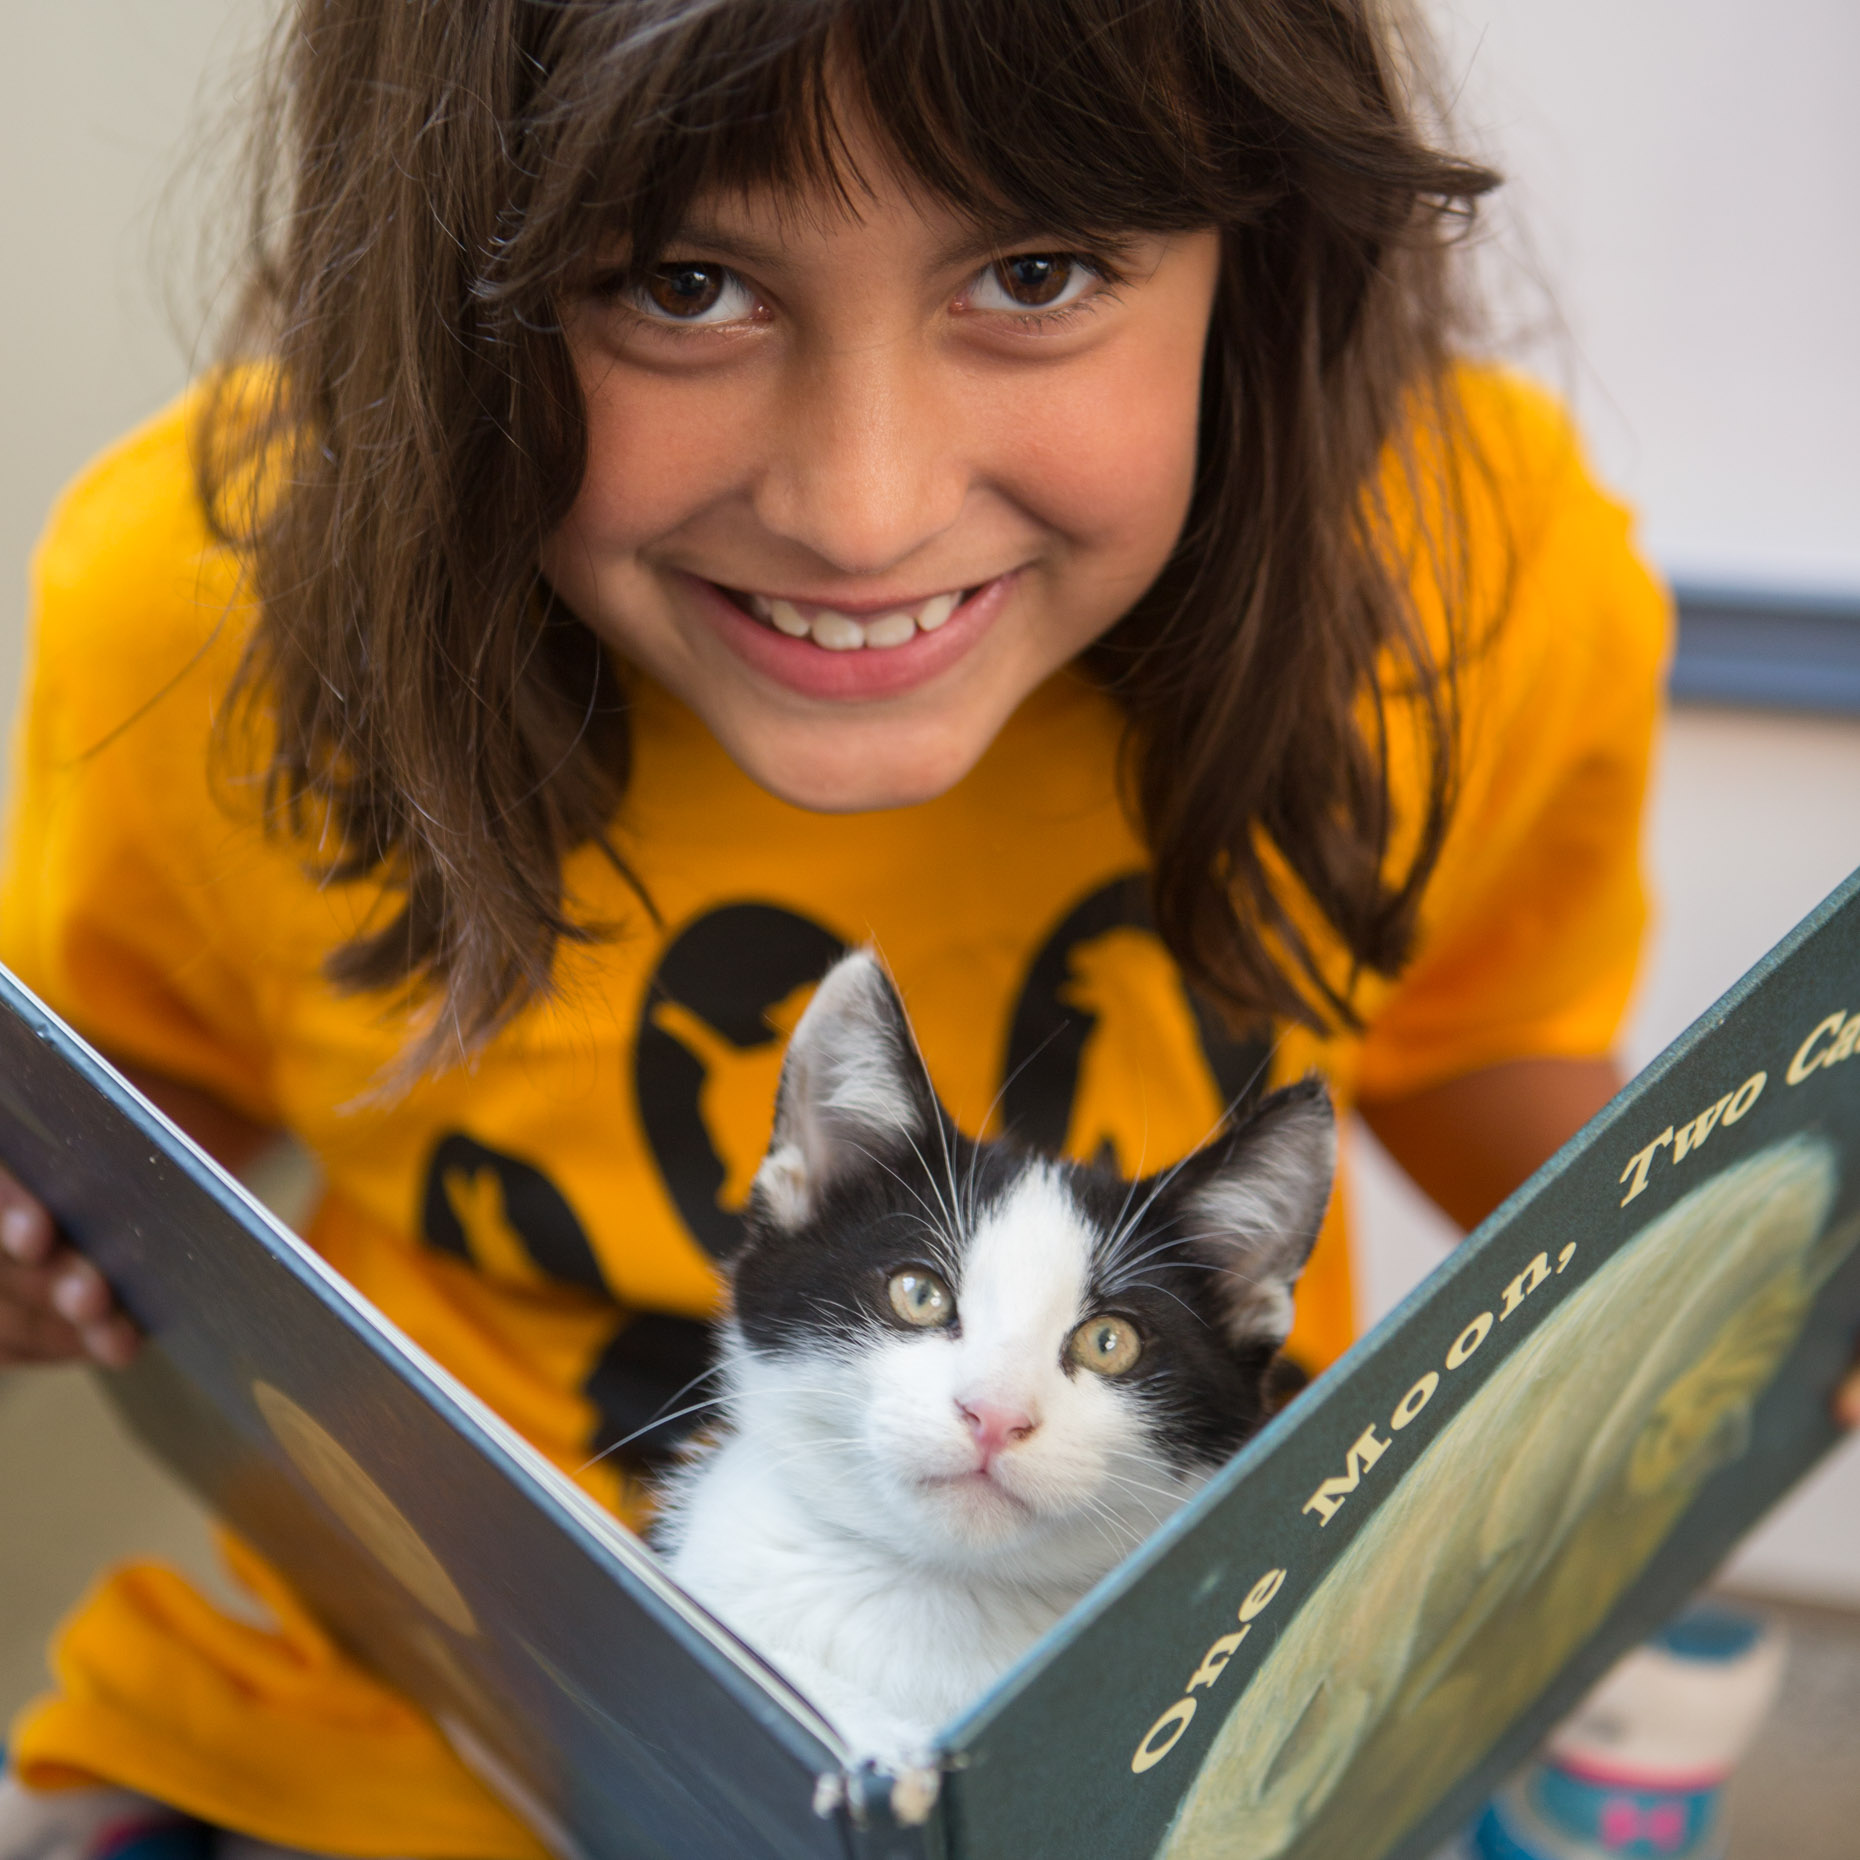 Pet Lifestyle Photography | Girl Holding Kitten in Book by Mark Rogers